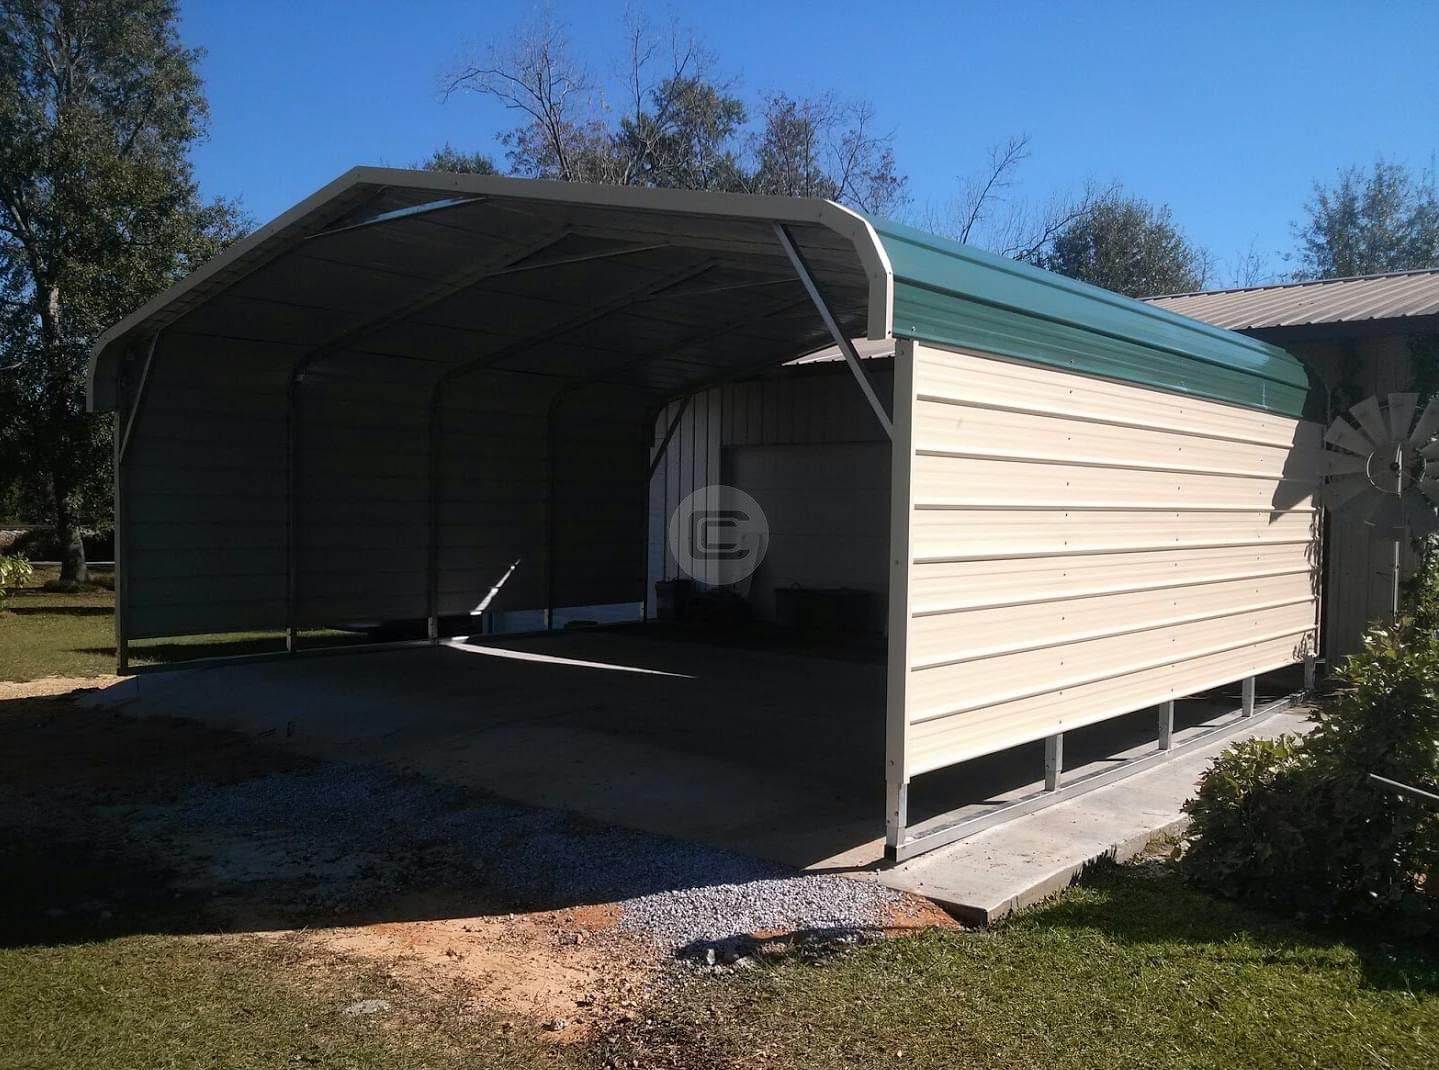 Cheap Carports Carport Garage Portable Carport Diy Carport Palram Carport Wood Carport House Carport Cheap Car With Images Carport Prices Carport Canopy Diy Carport